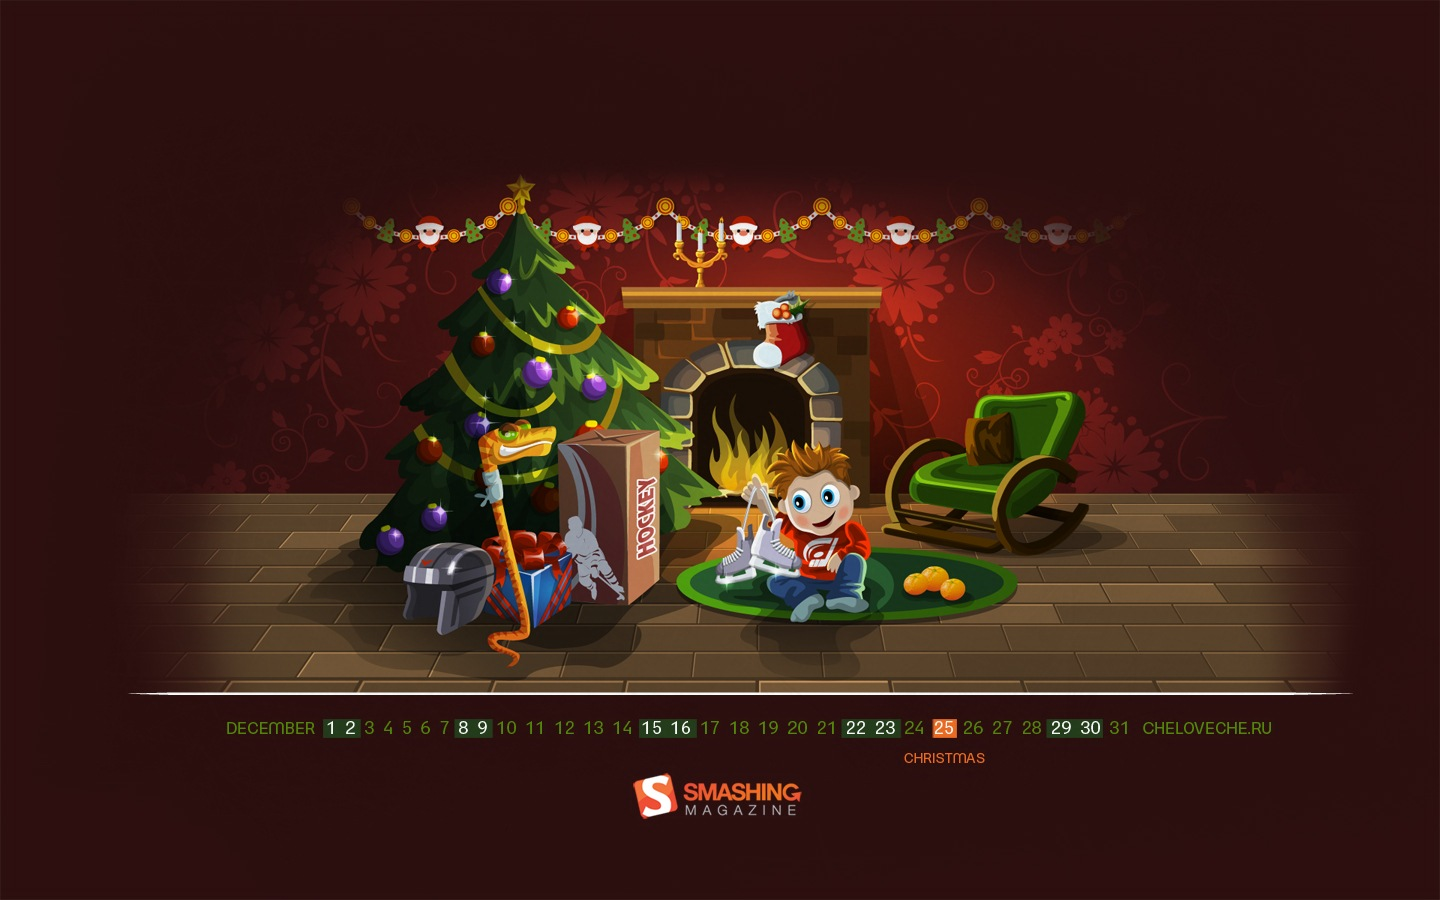 Years Christmas theme Calendar Wallpaper 32044